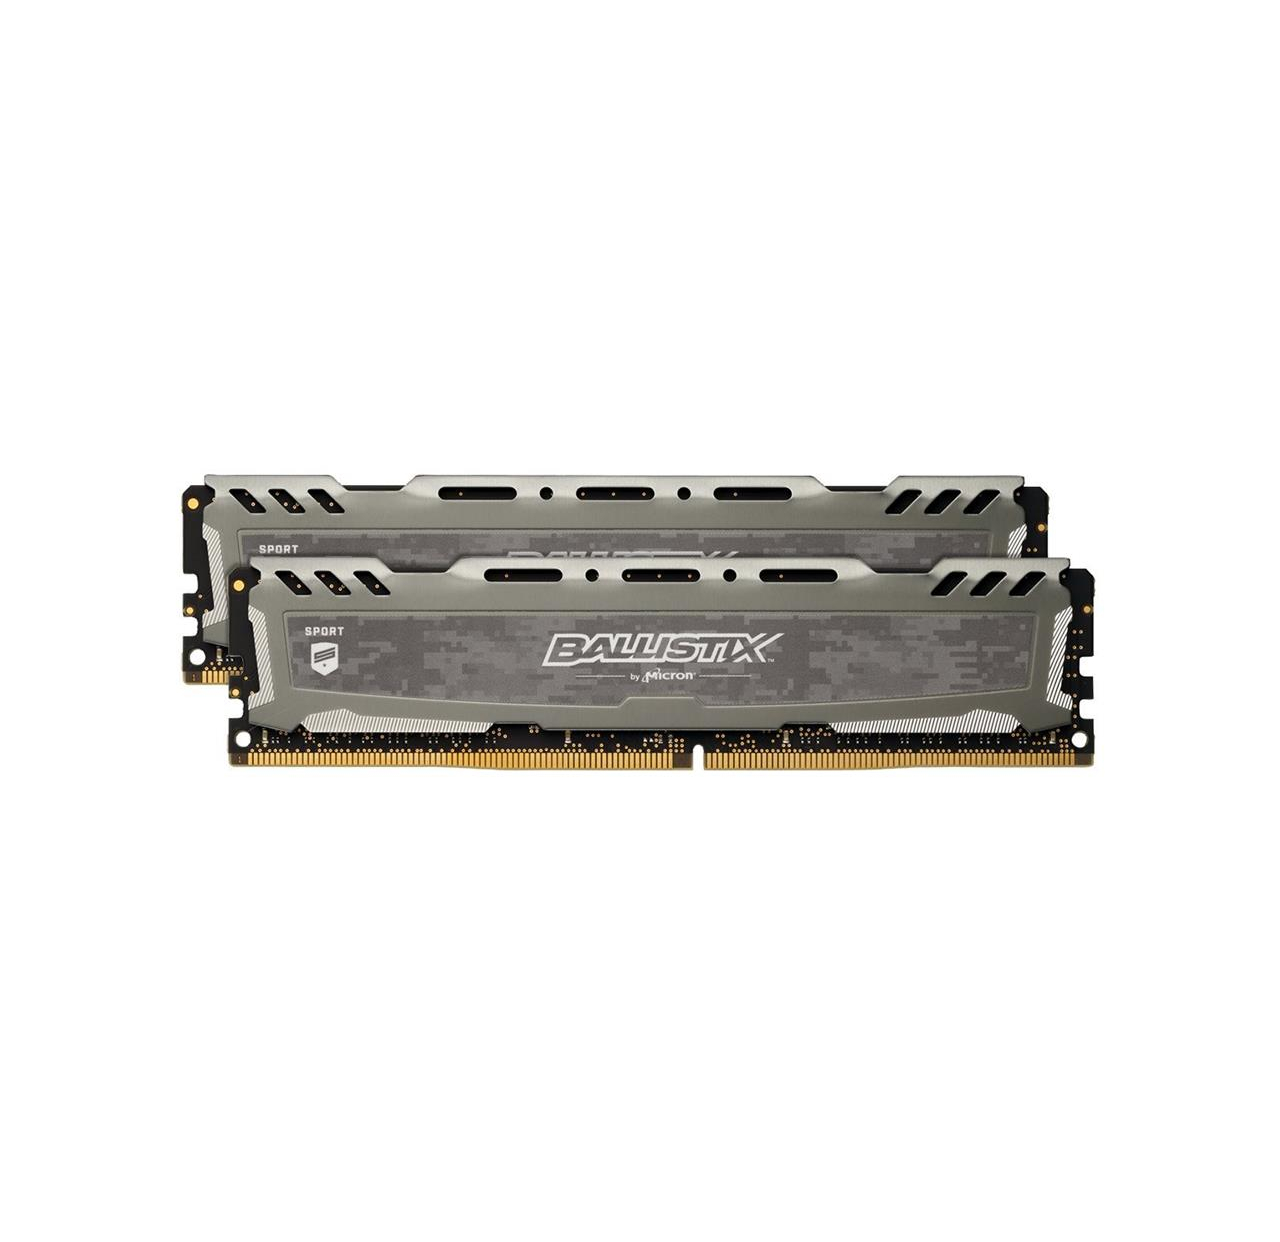 Pamięć RAM Crucial Ballistix Sport LT Gray 32GB Kit (16GBx2) DDR4 2666 CL16 DRx8 Unbuffered